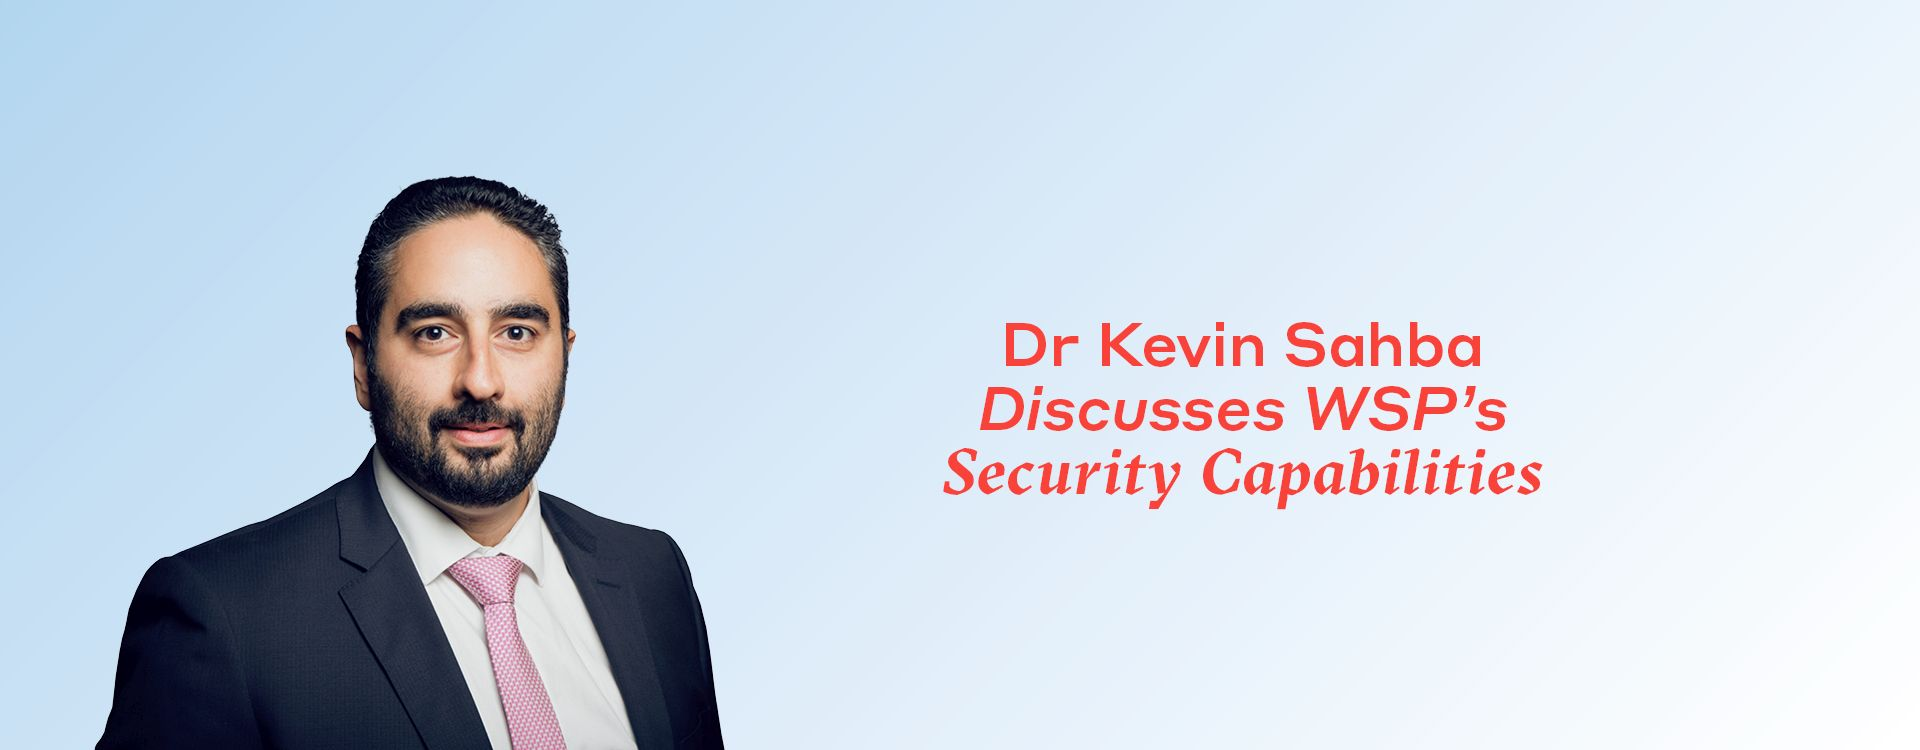 Dr Kevin Sahba, WSP's ANZ Discipline Lead for Security Risk Management and Information Resilience, discusses improving the security, risk and resilience posture of organisations.